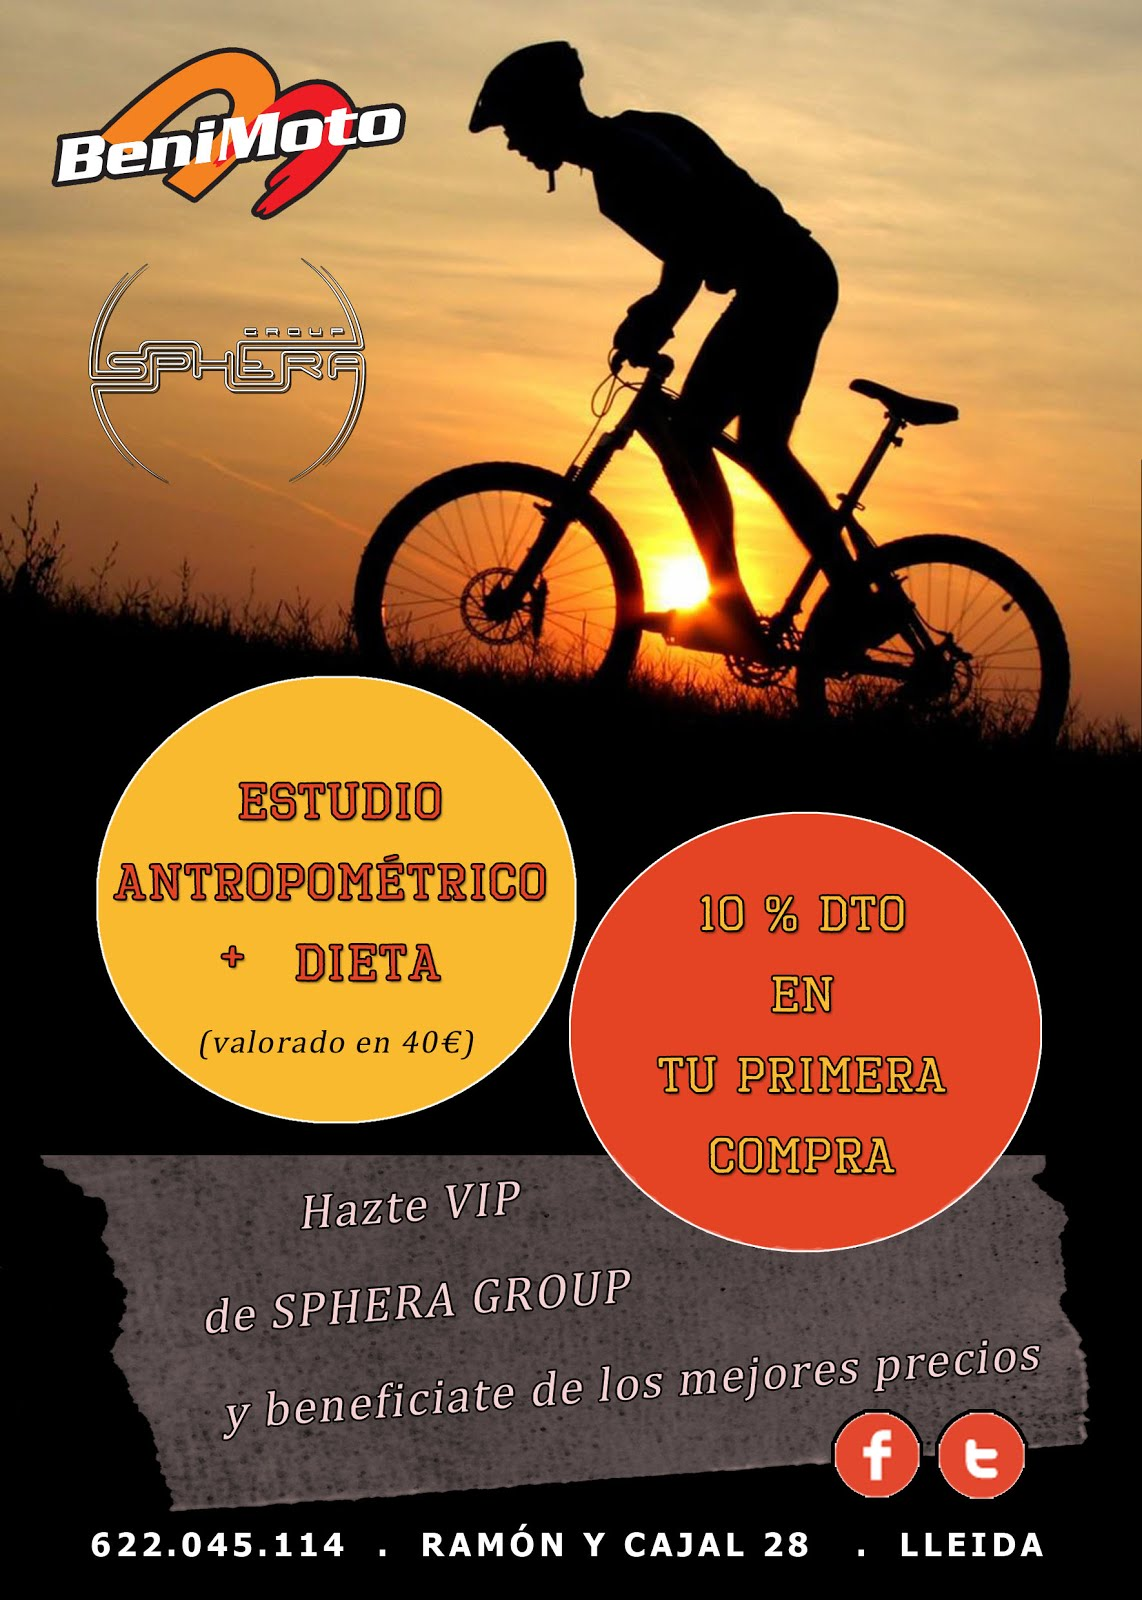 BENIMOTO Y SPHERA GROUP